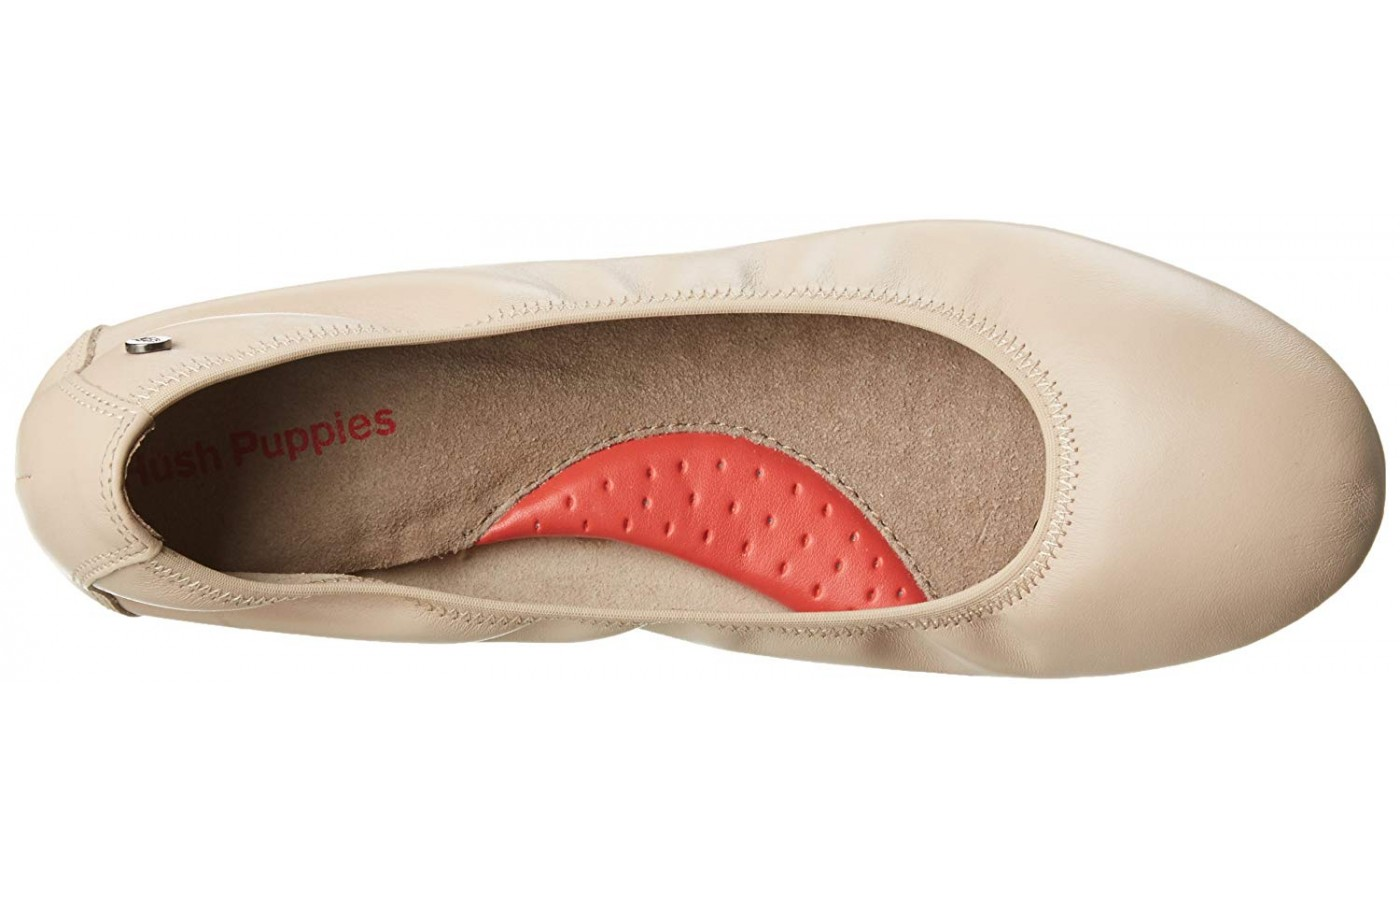 Hush Puppies Chaste Upper